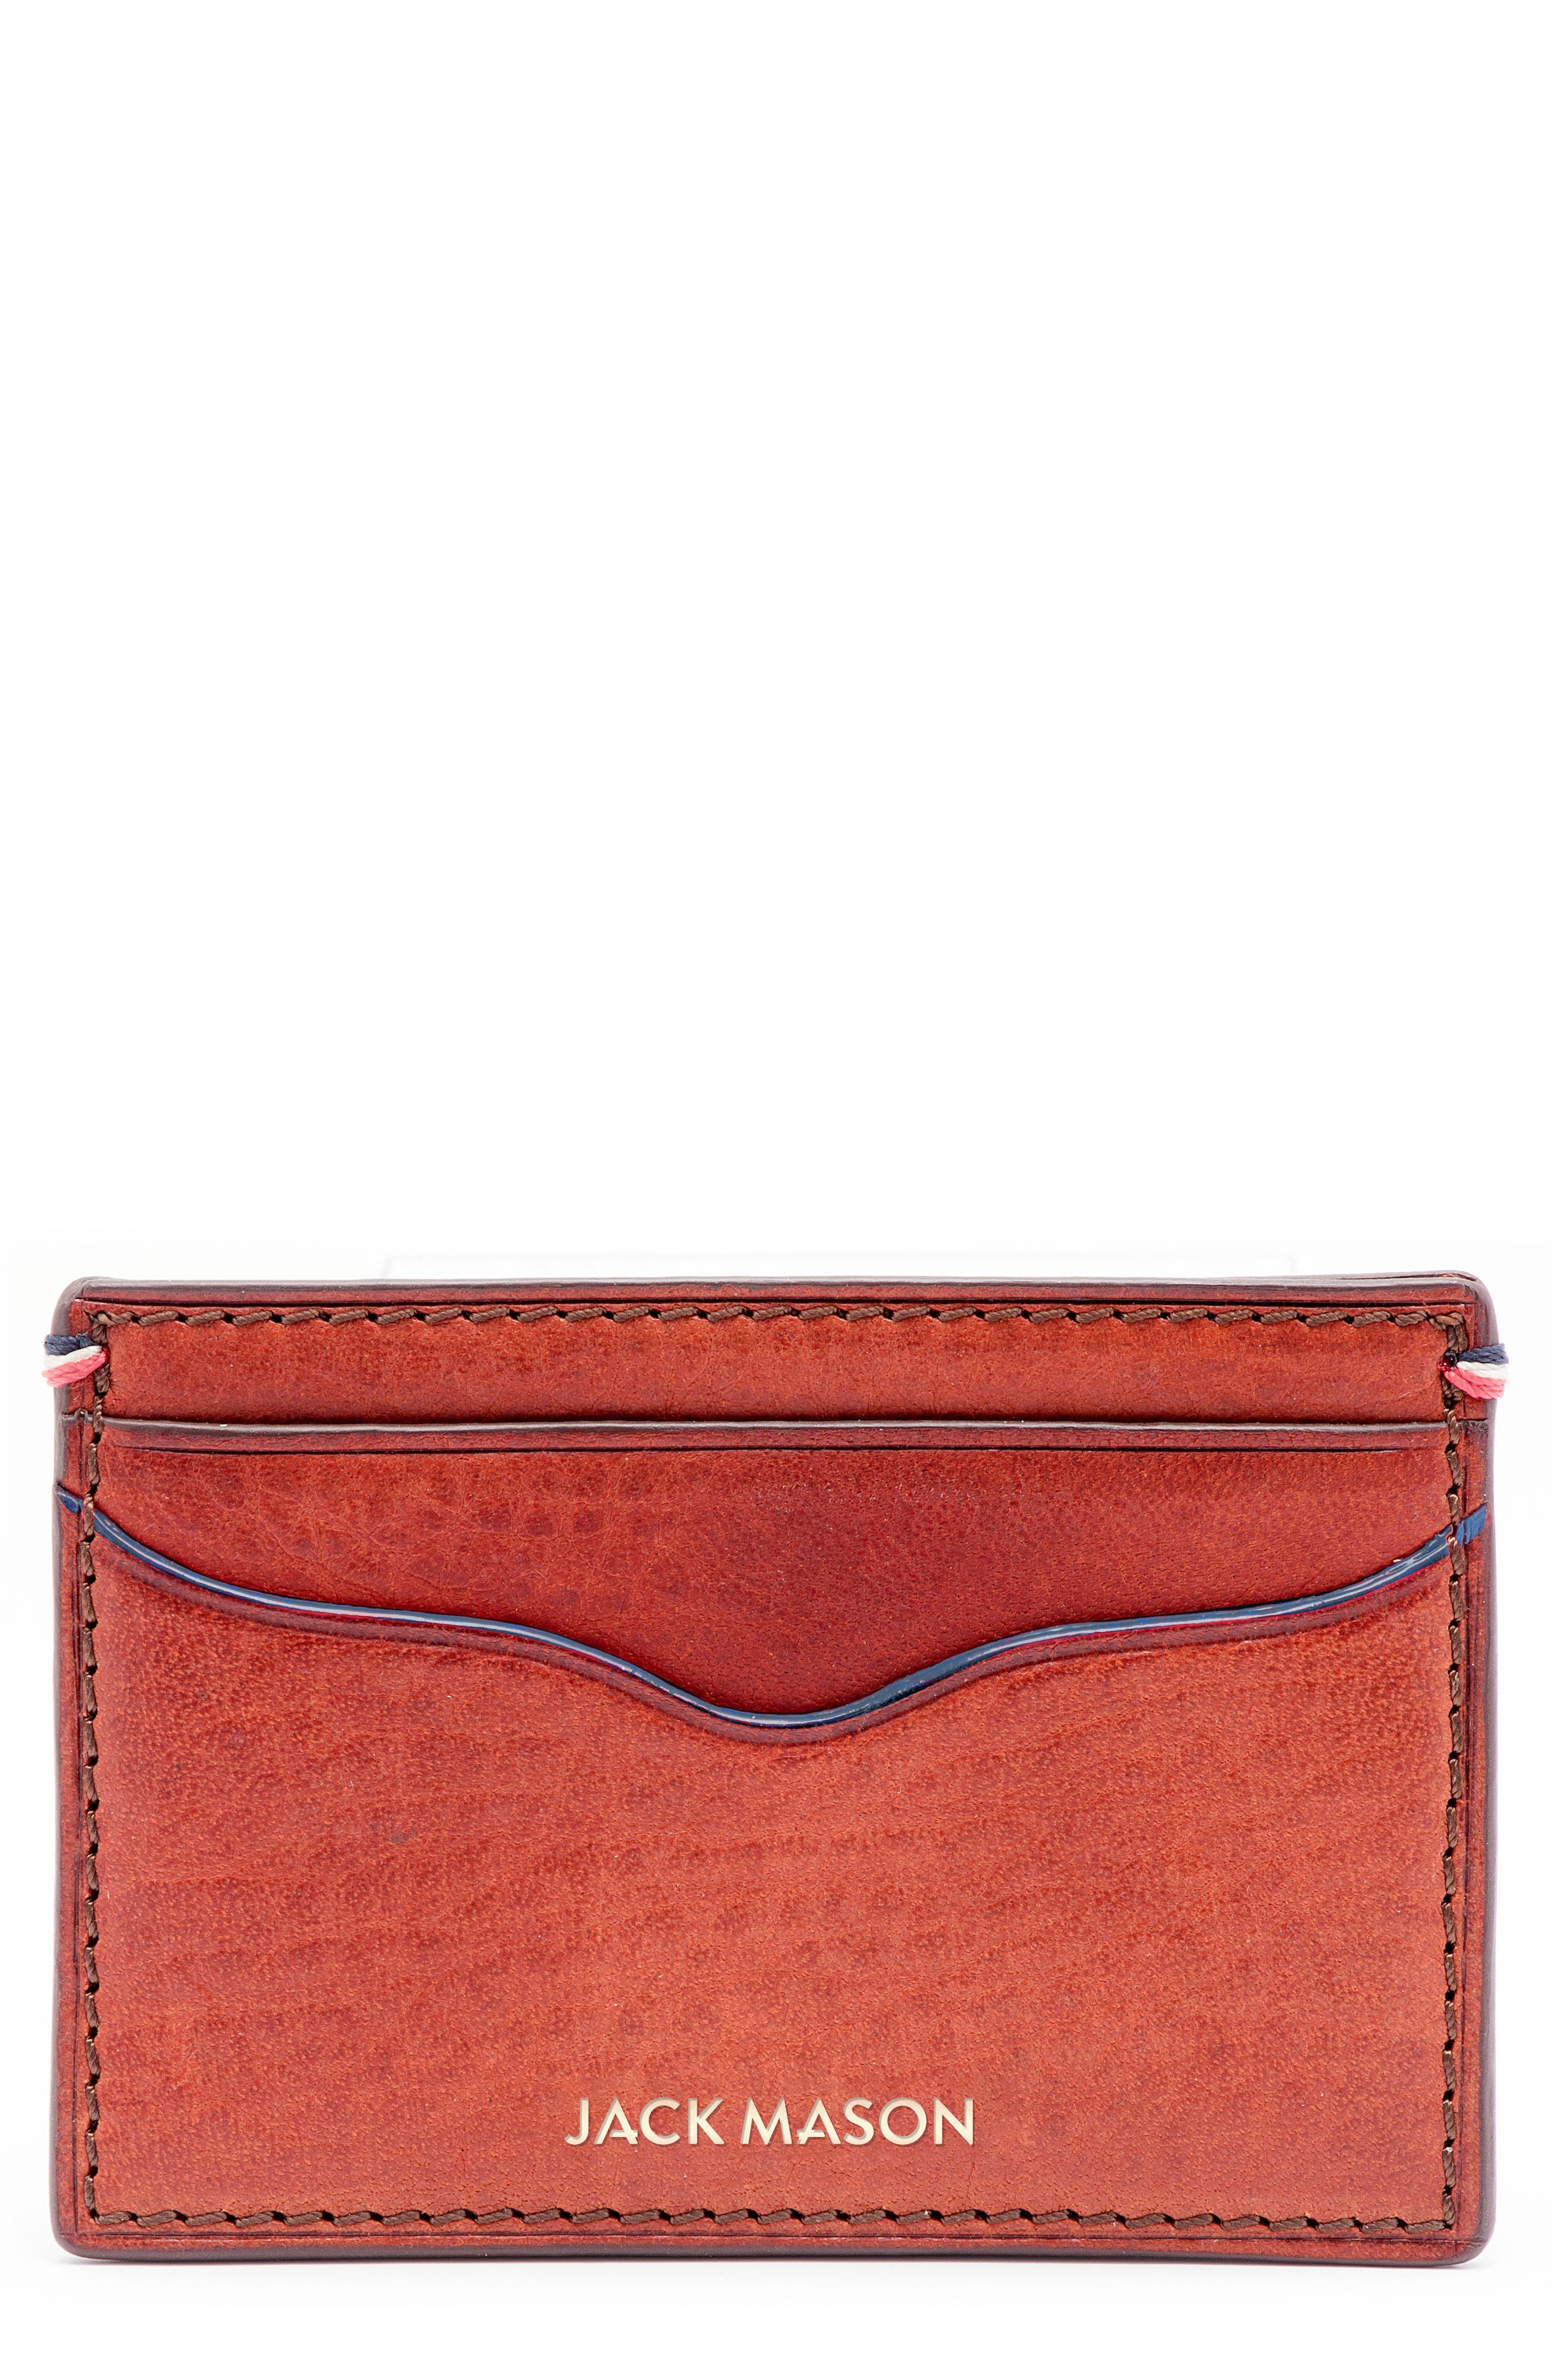 Pebbled Leather Card Case,                         Main,                         color,